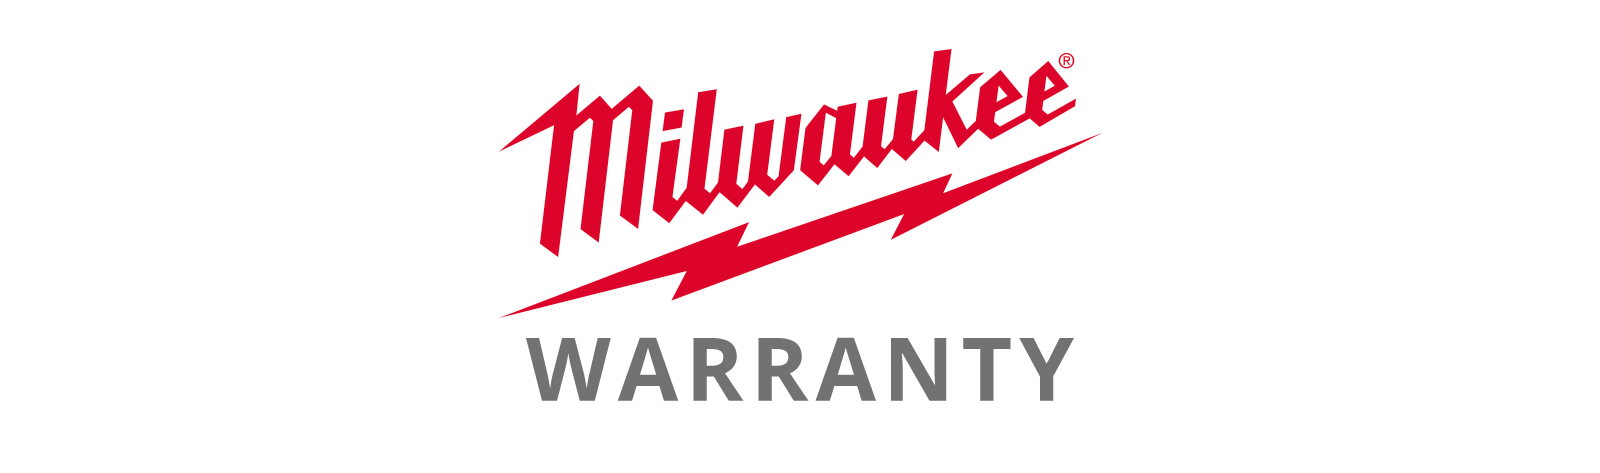 milwaukee-warranty.png